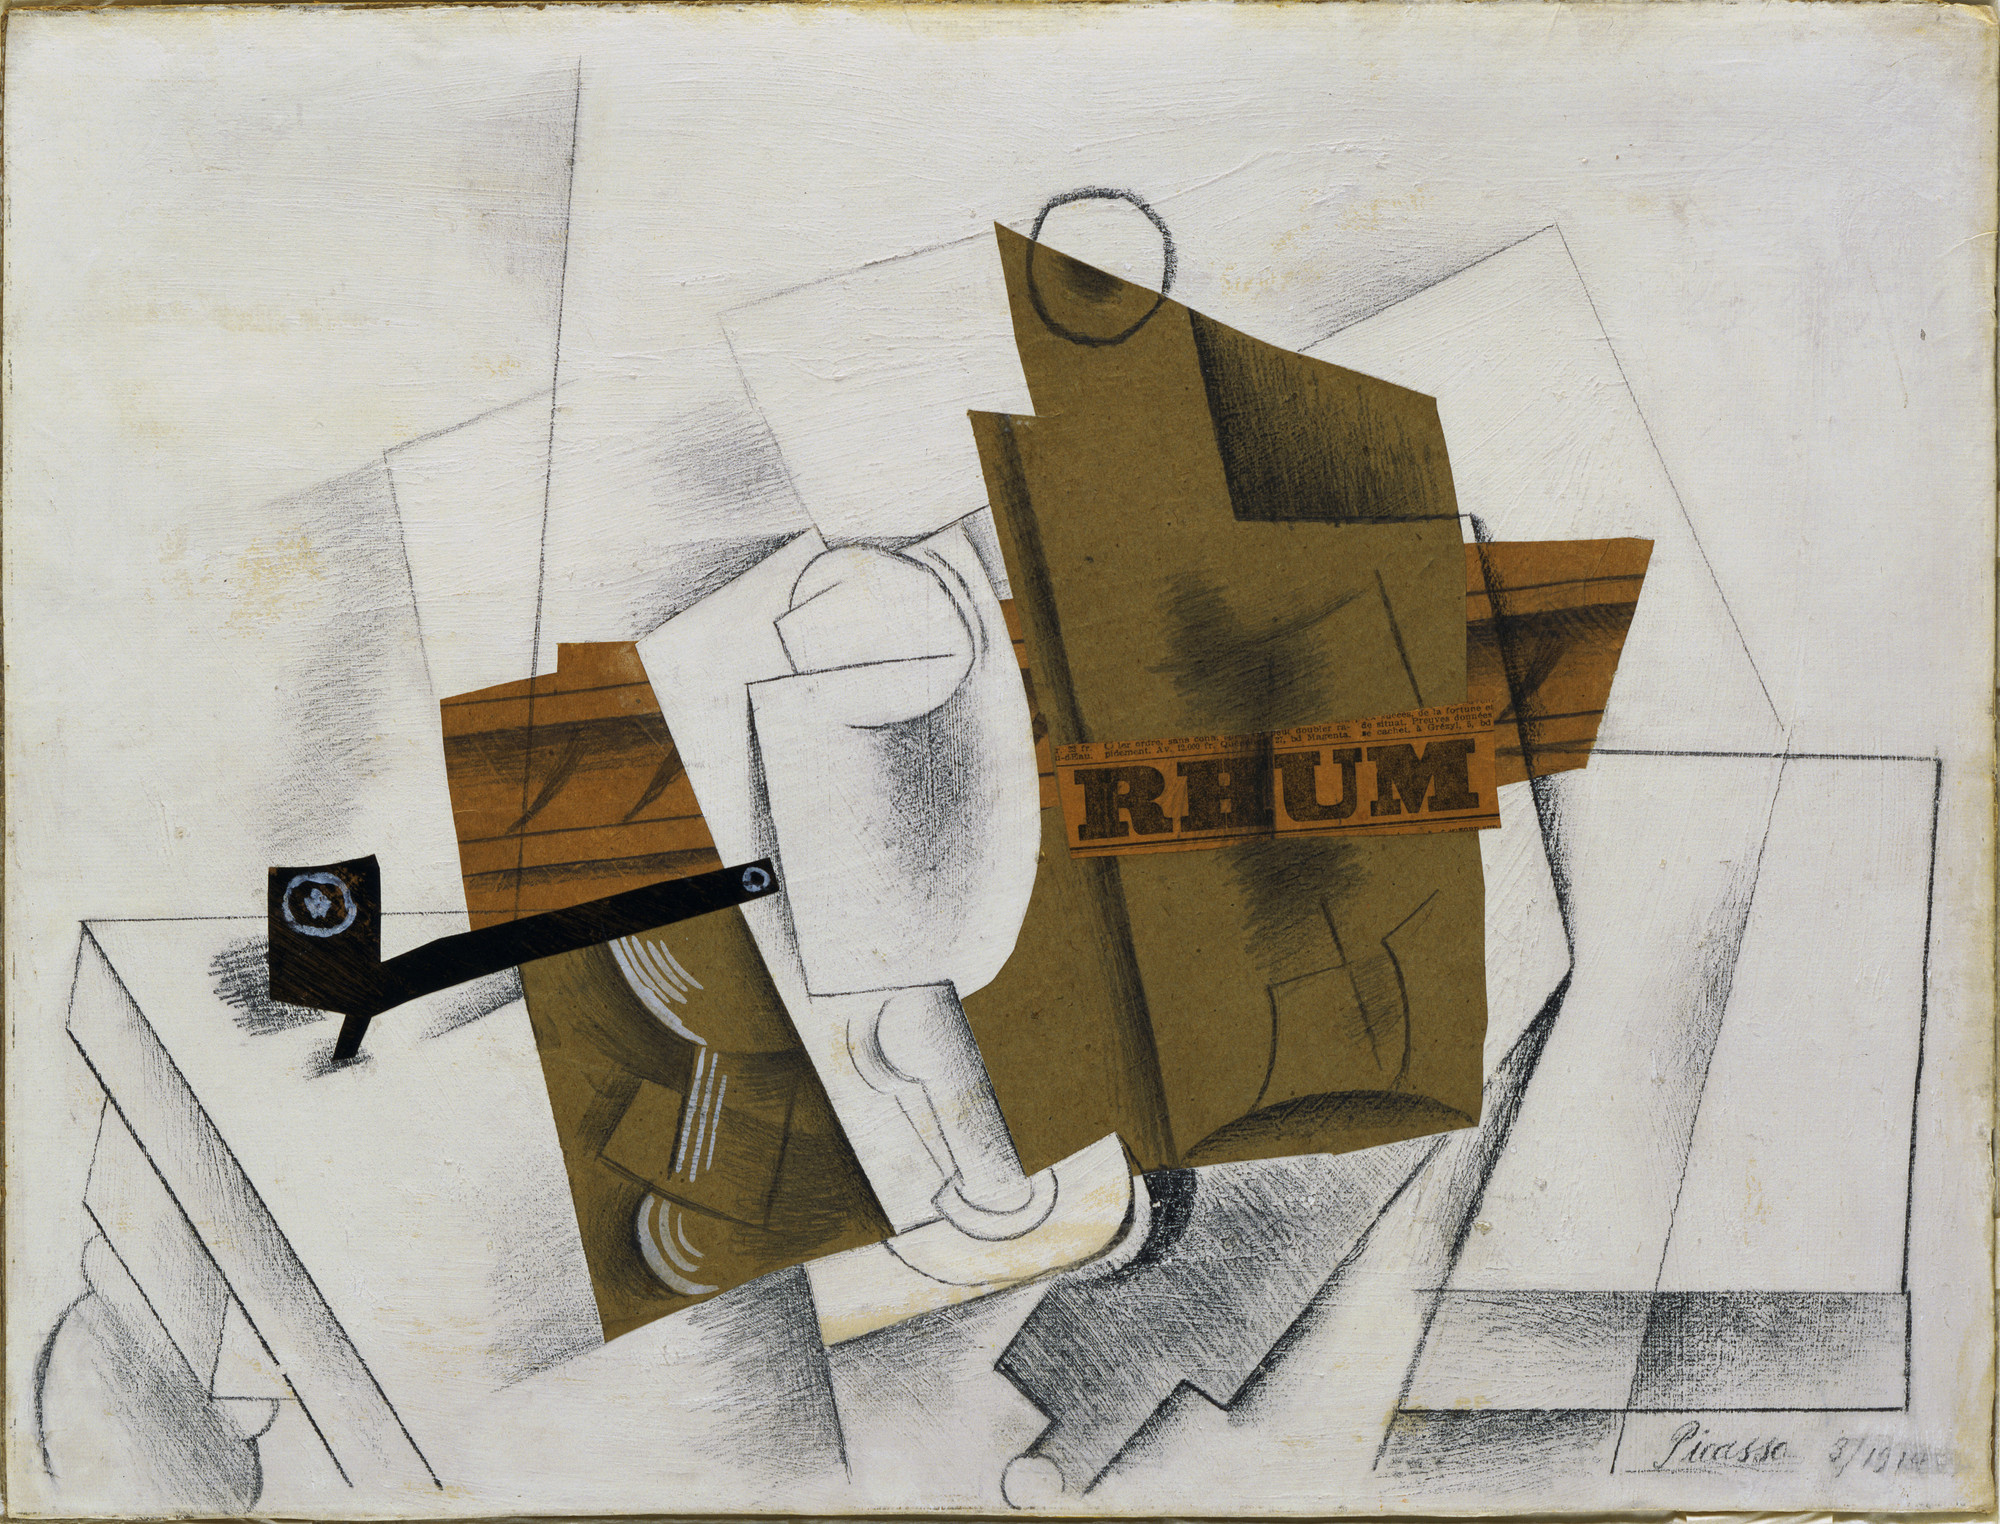 Pablo Picasso. Pipe, Glass, Bottle of Rum. March 1914. Cut-and-pasted colored paper, printed paper, and painted paper, pencil, and gouache on prepared board, 15 3⁄4 × 20 3/4″ (40 × 52.7 cm). Gift of Mr. and Mrs. Daniel Saidenberg. © 2008 Estate of Pablo Picasso / Artists Rights Society (ARS), New York